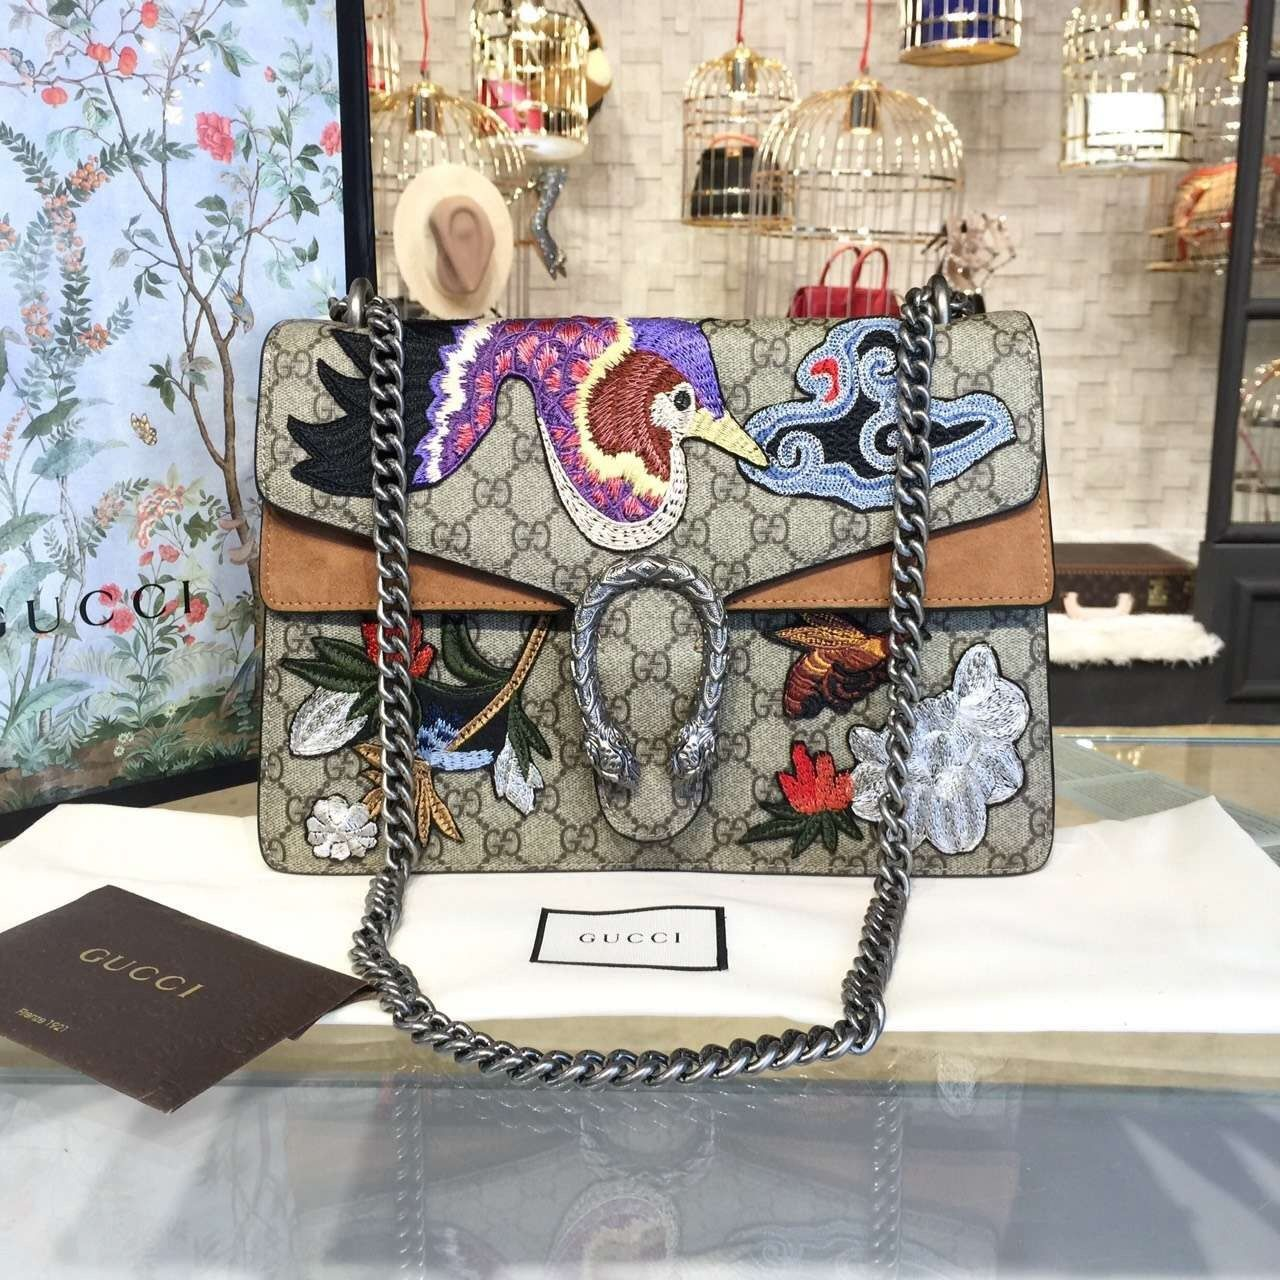 f8267fa9b57 Gucci Dionysus GG Supreme Canvas Shoulder Large Bag with Phoenix and  Flowers Embroidery Fall Winter 2016 Collection